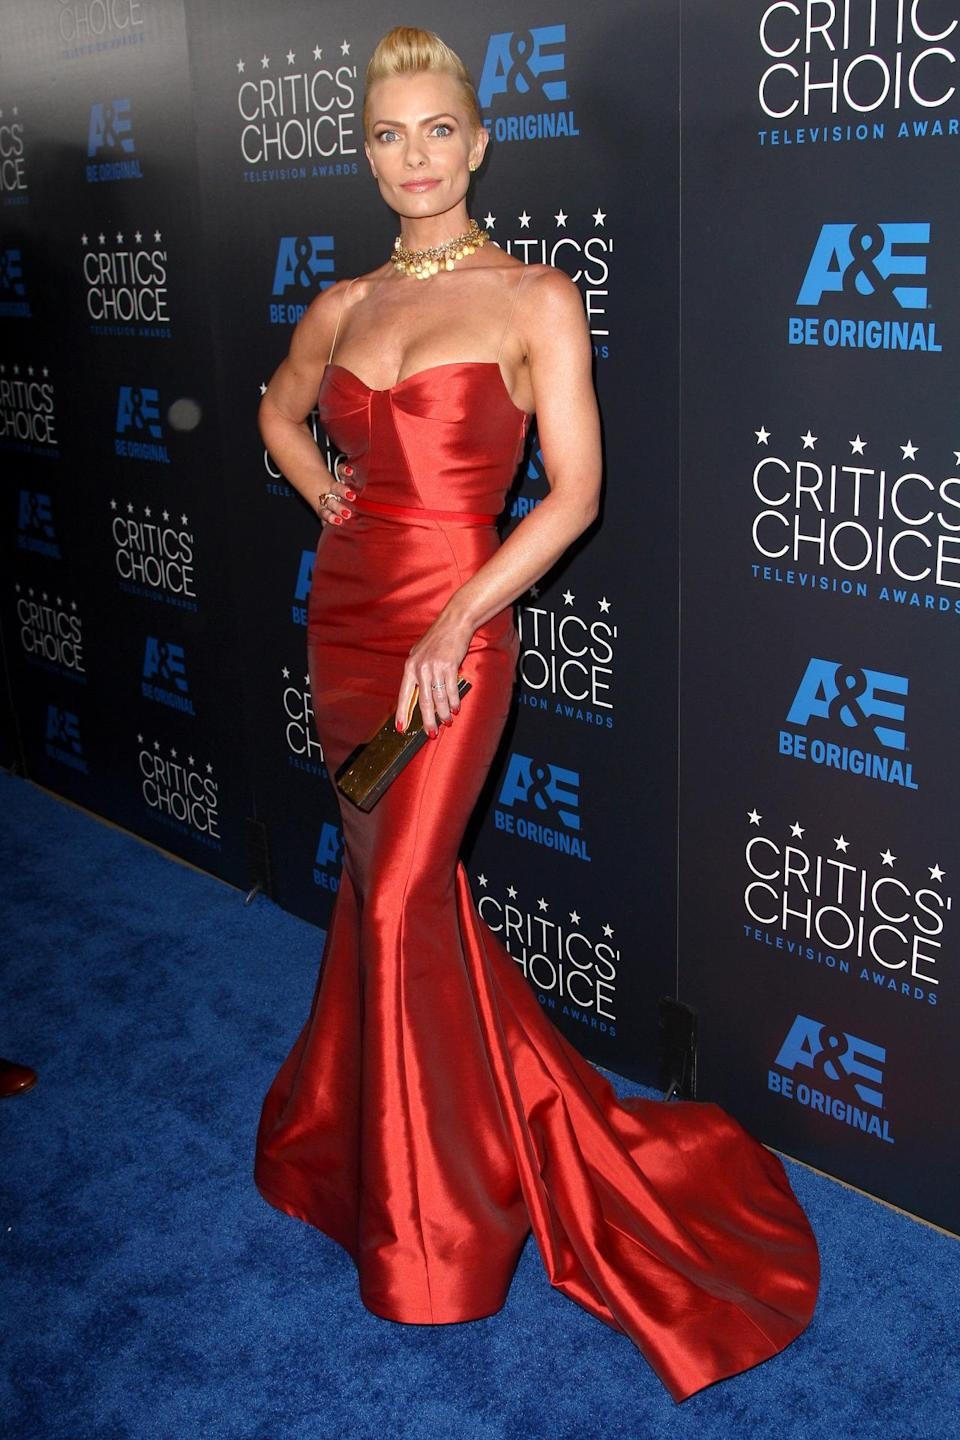 While many other actresses chose more casual black tie ensembles, Jamie Pressly went all out in a red/orange Gustavo Cadile gown. The dress showed a lot of cleavage and was only held up by two very little nearly-invisible straps.